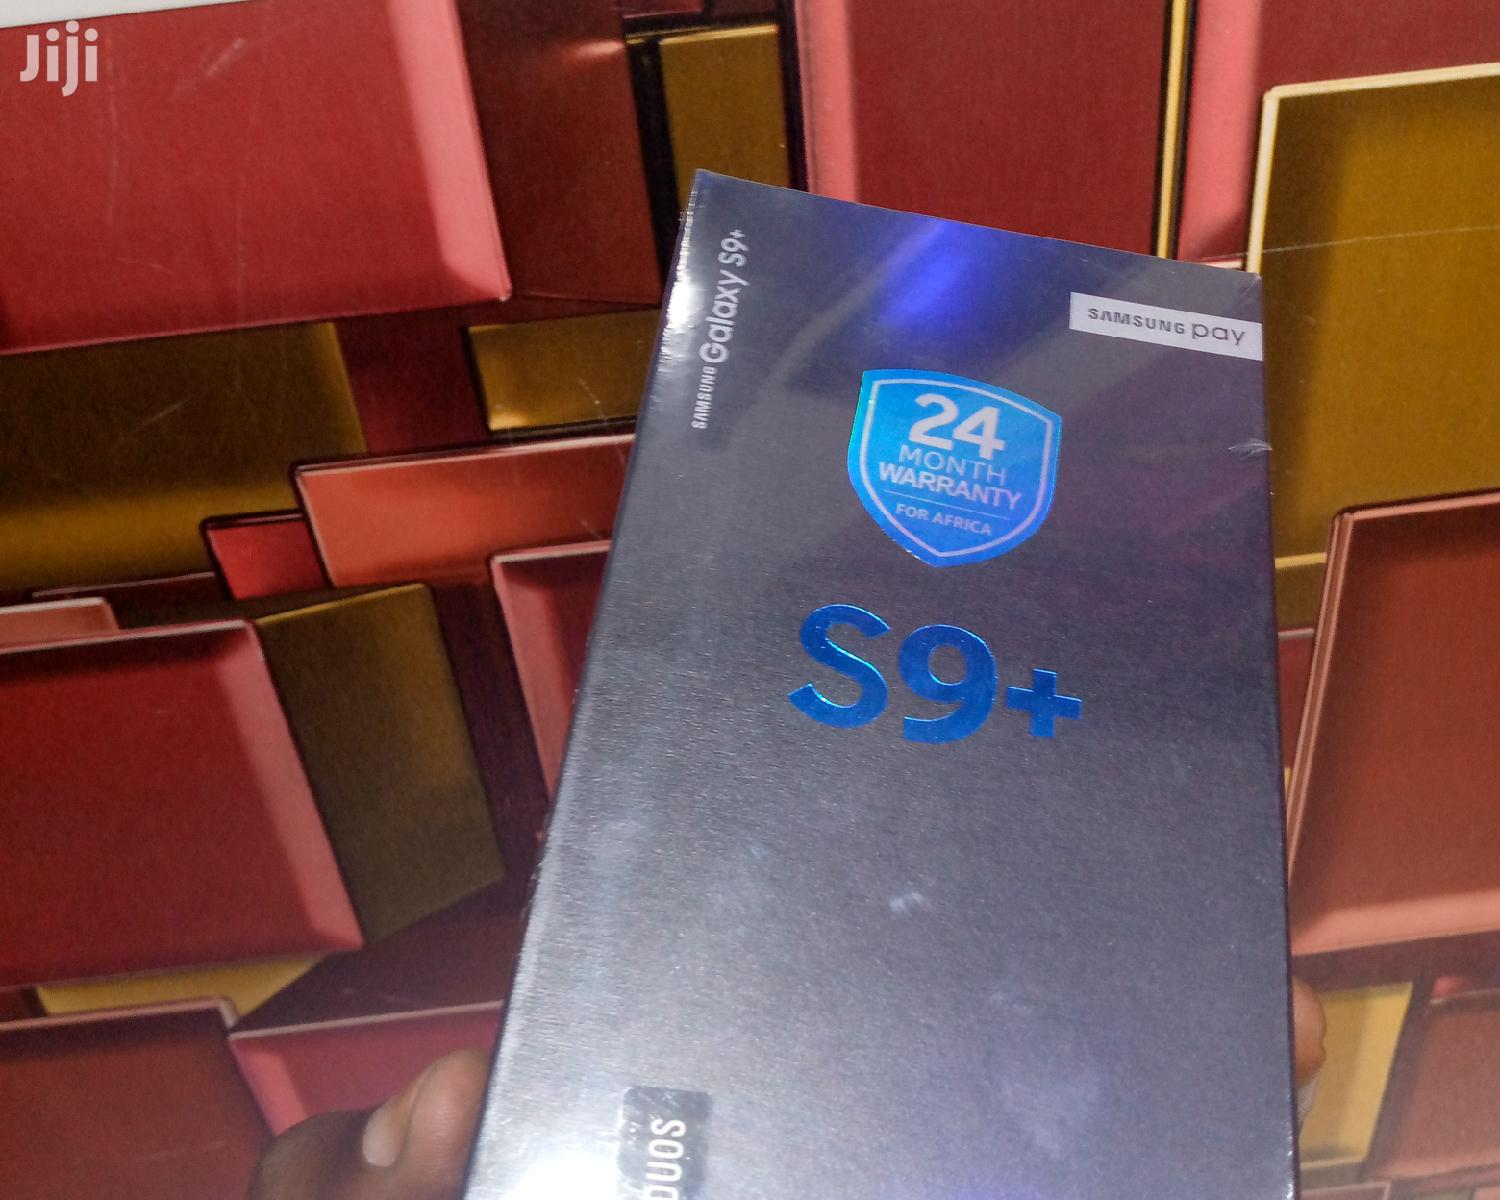 Archive: New Samsung Galaxy S9 Plus 64 GB Black